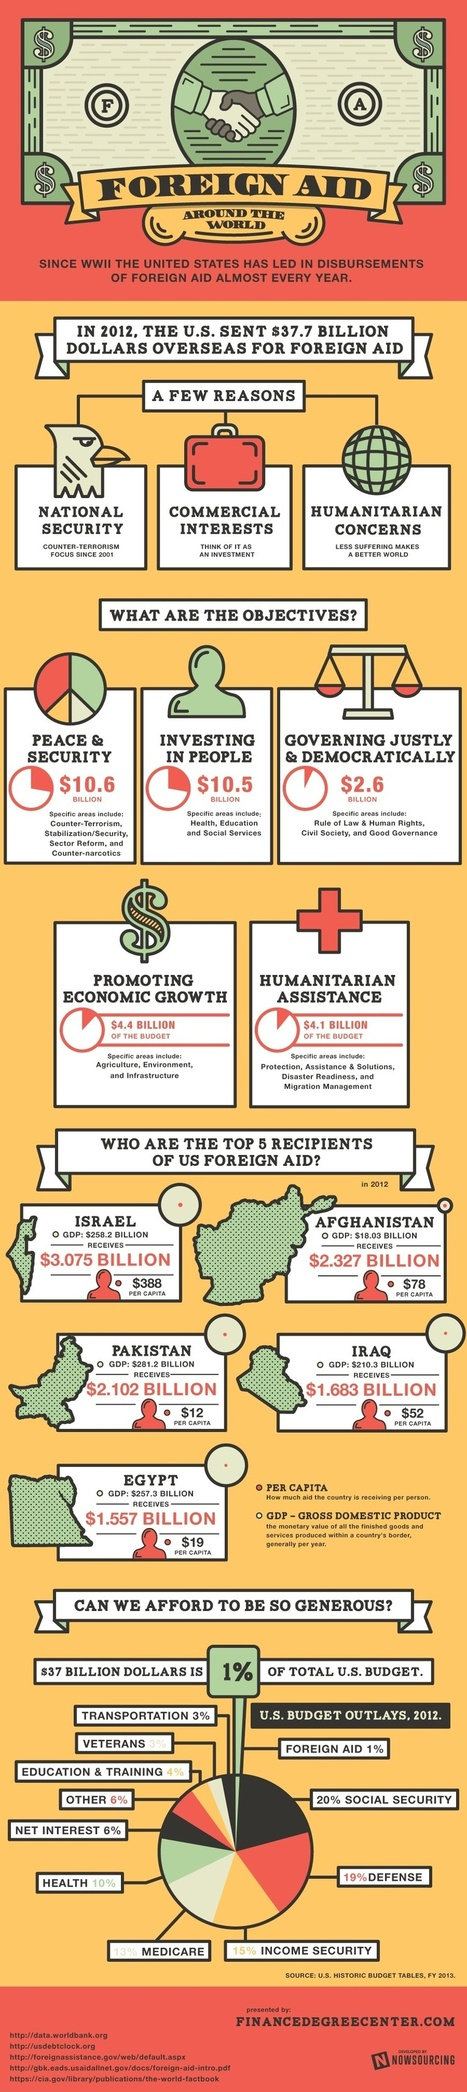 U.S. Foreign Aid Around the World [Infographic] | Gov & Law - Casey Appel | Scoop.it